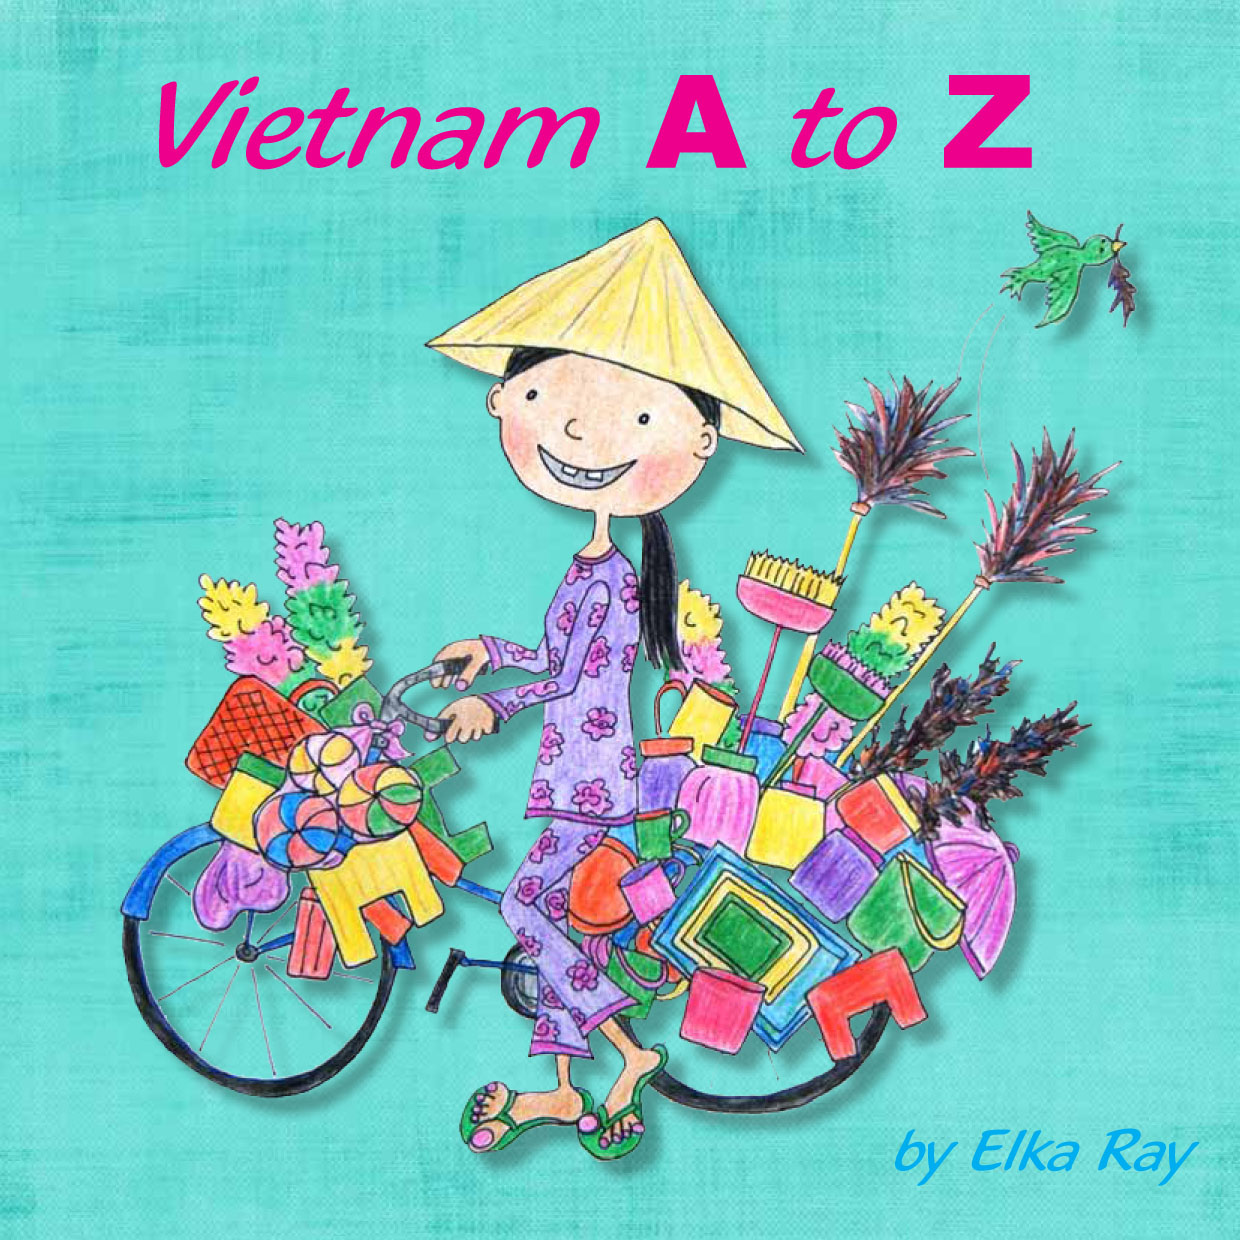 Vietnam A to Z cover